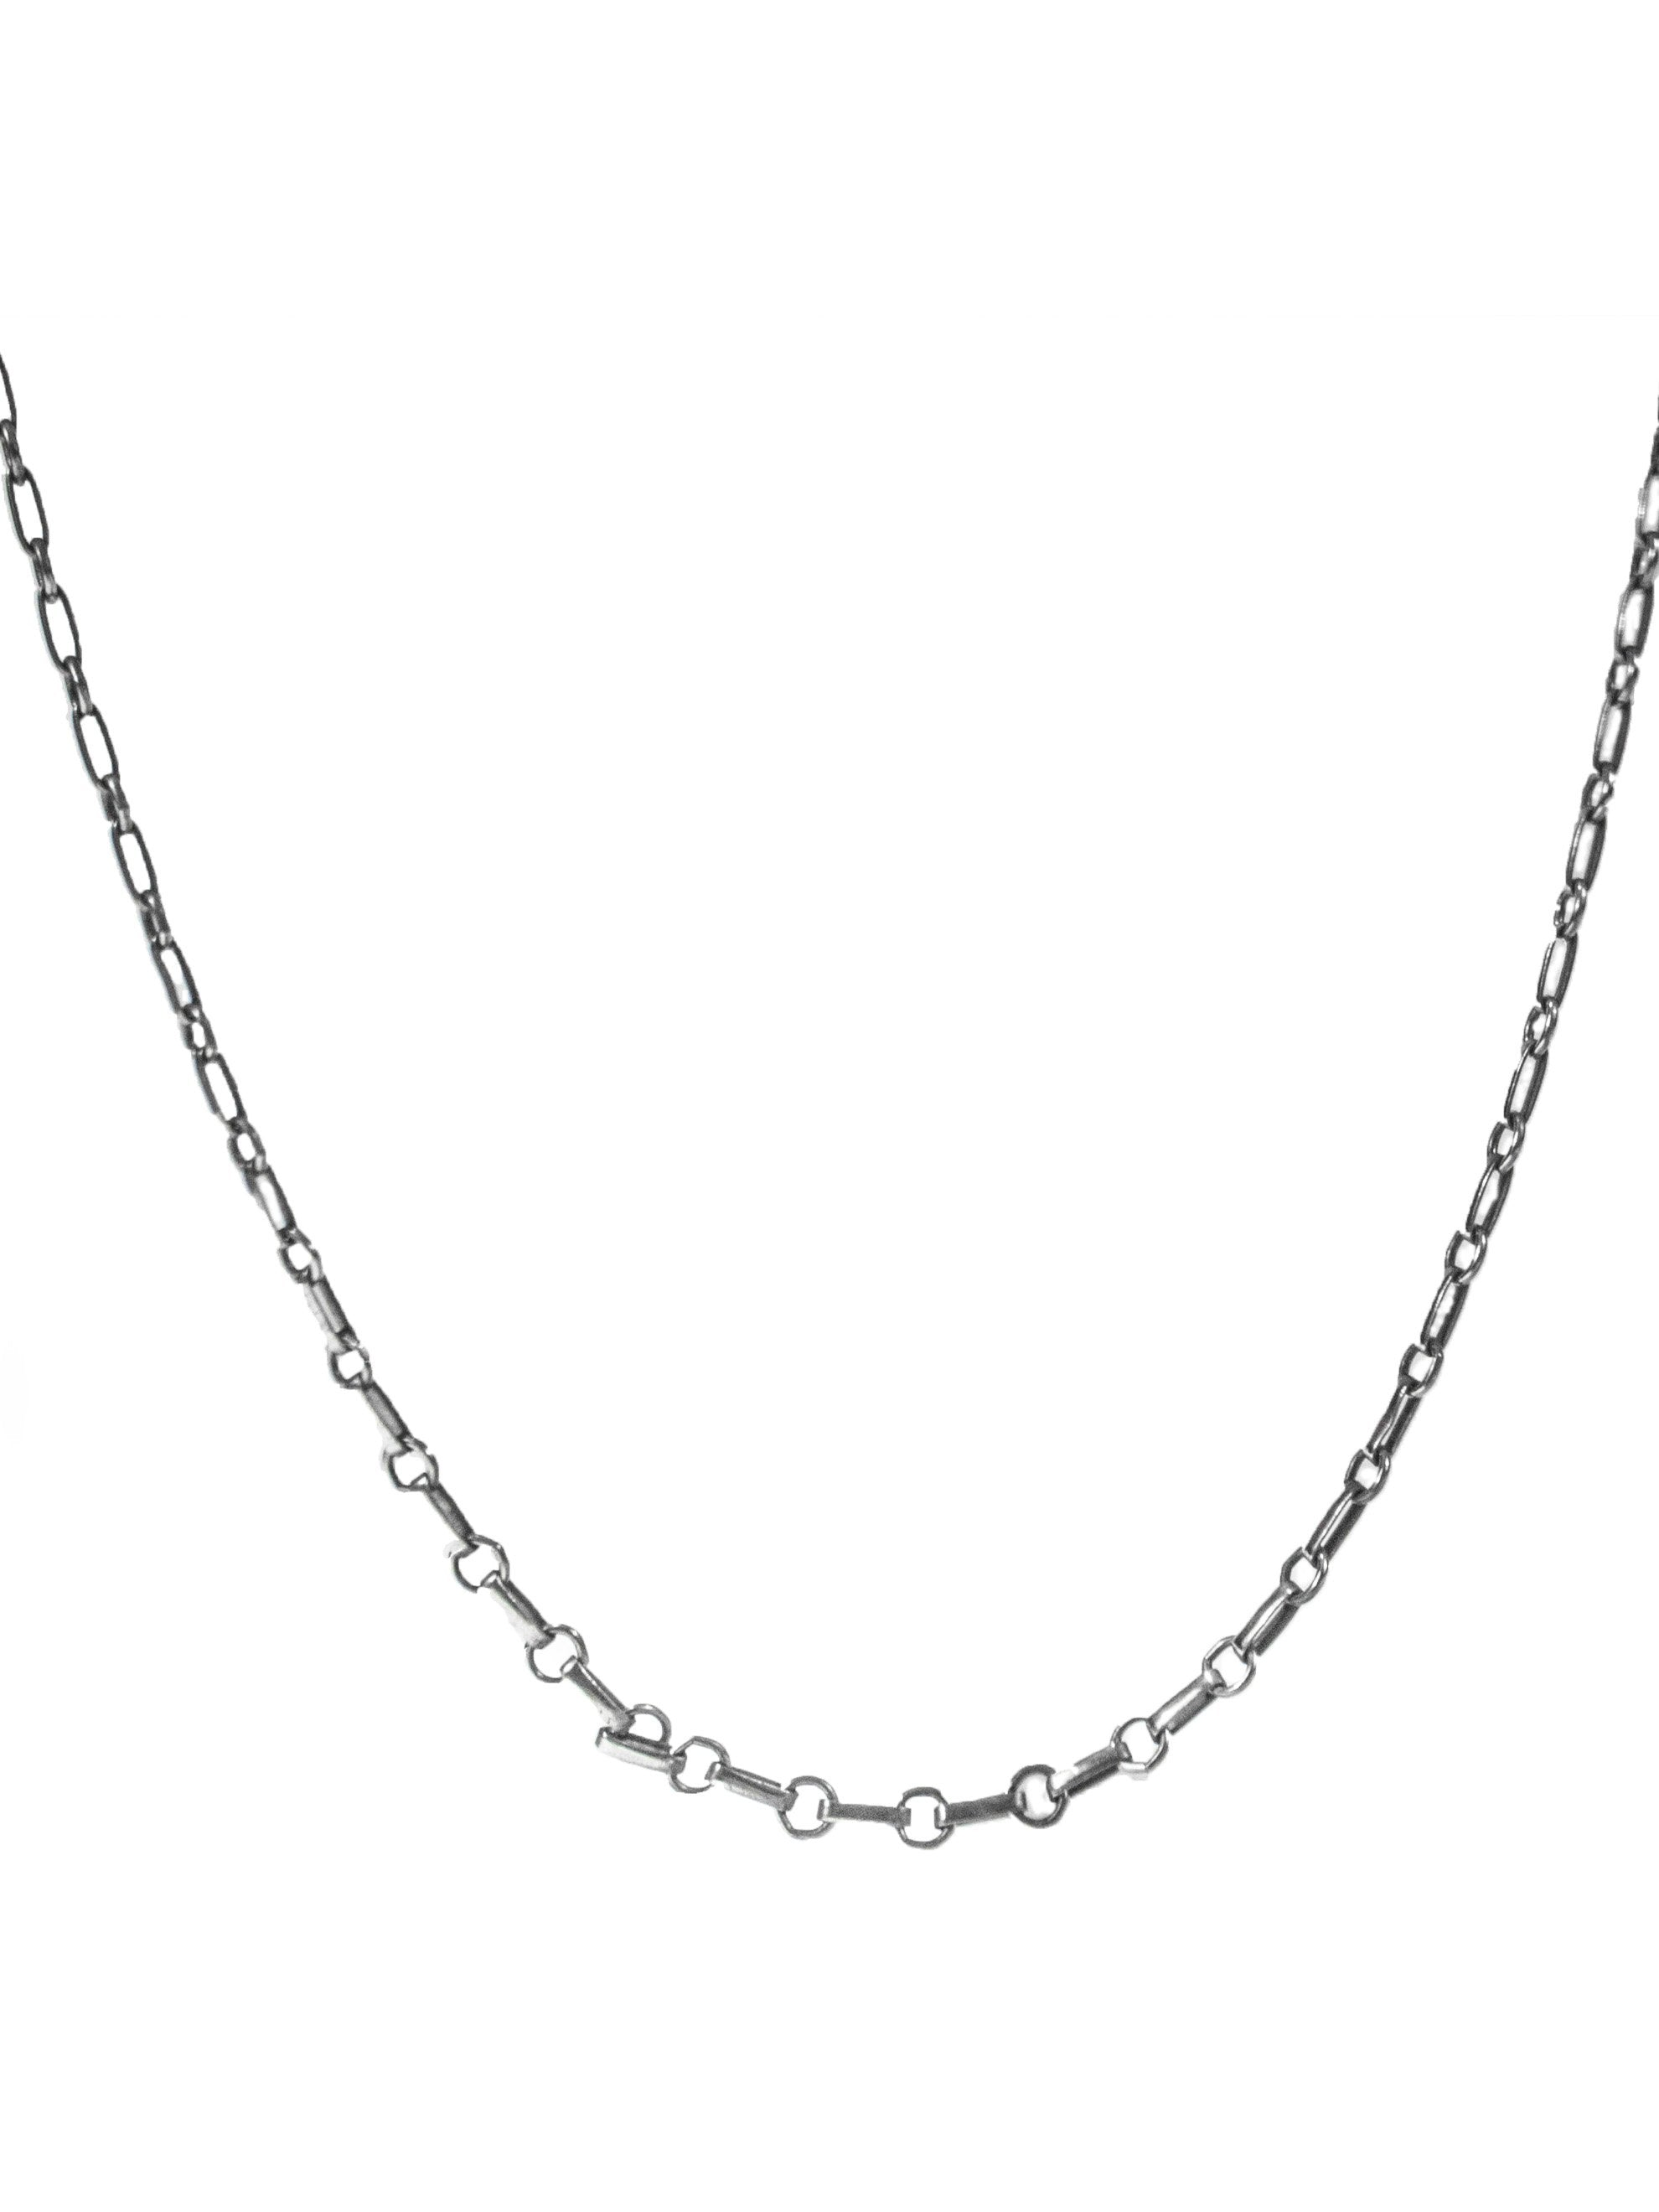 Sterling Silver Vintage .925 Sterling Silver Handmade Linked Chain Necklace 3